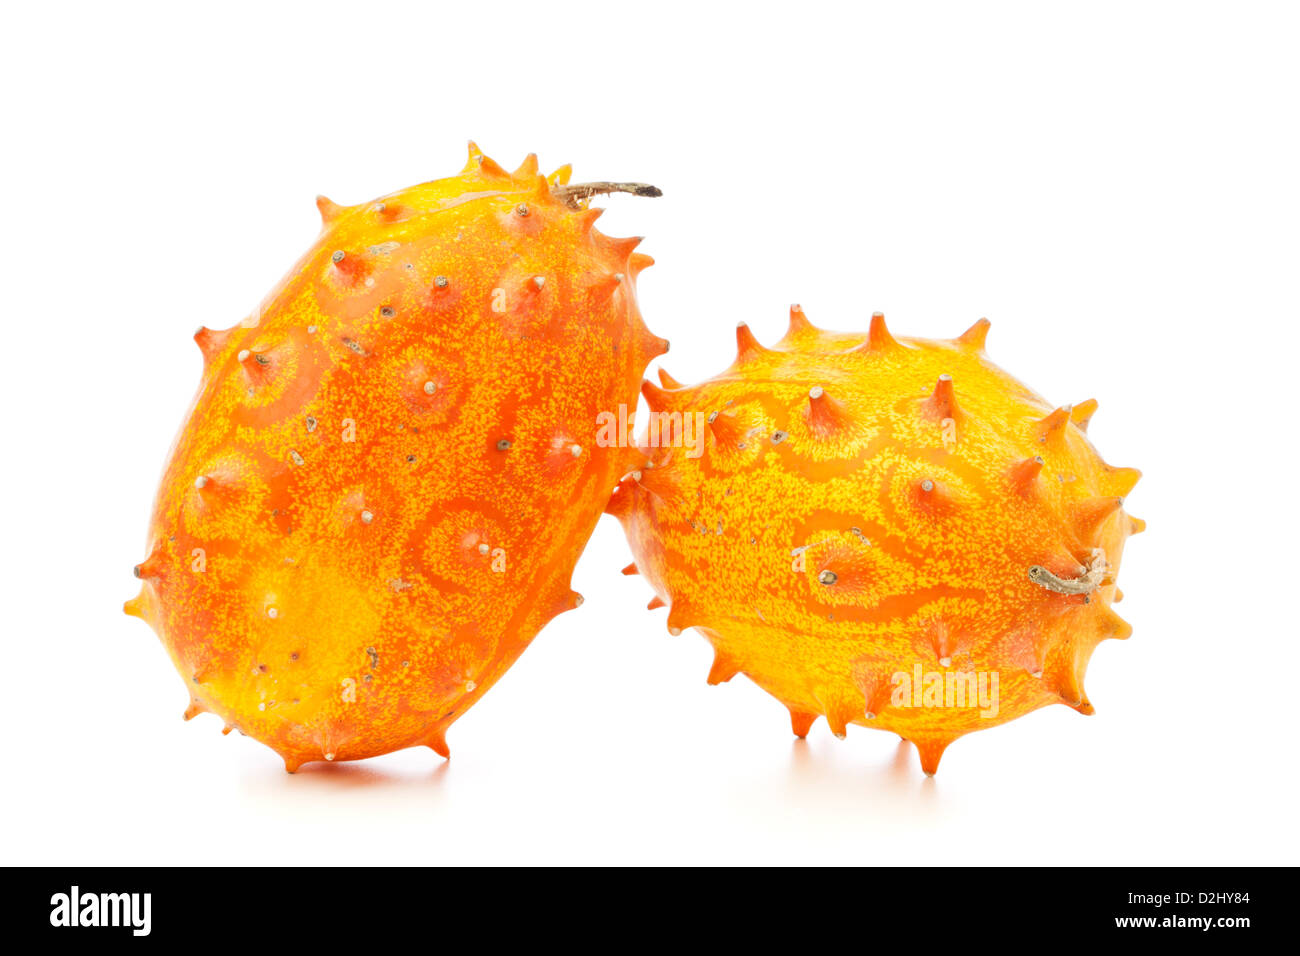 Two Kiwano fruit, also called African Horned melon or Horned Cucumber, isolated on white background Stock Photo